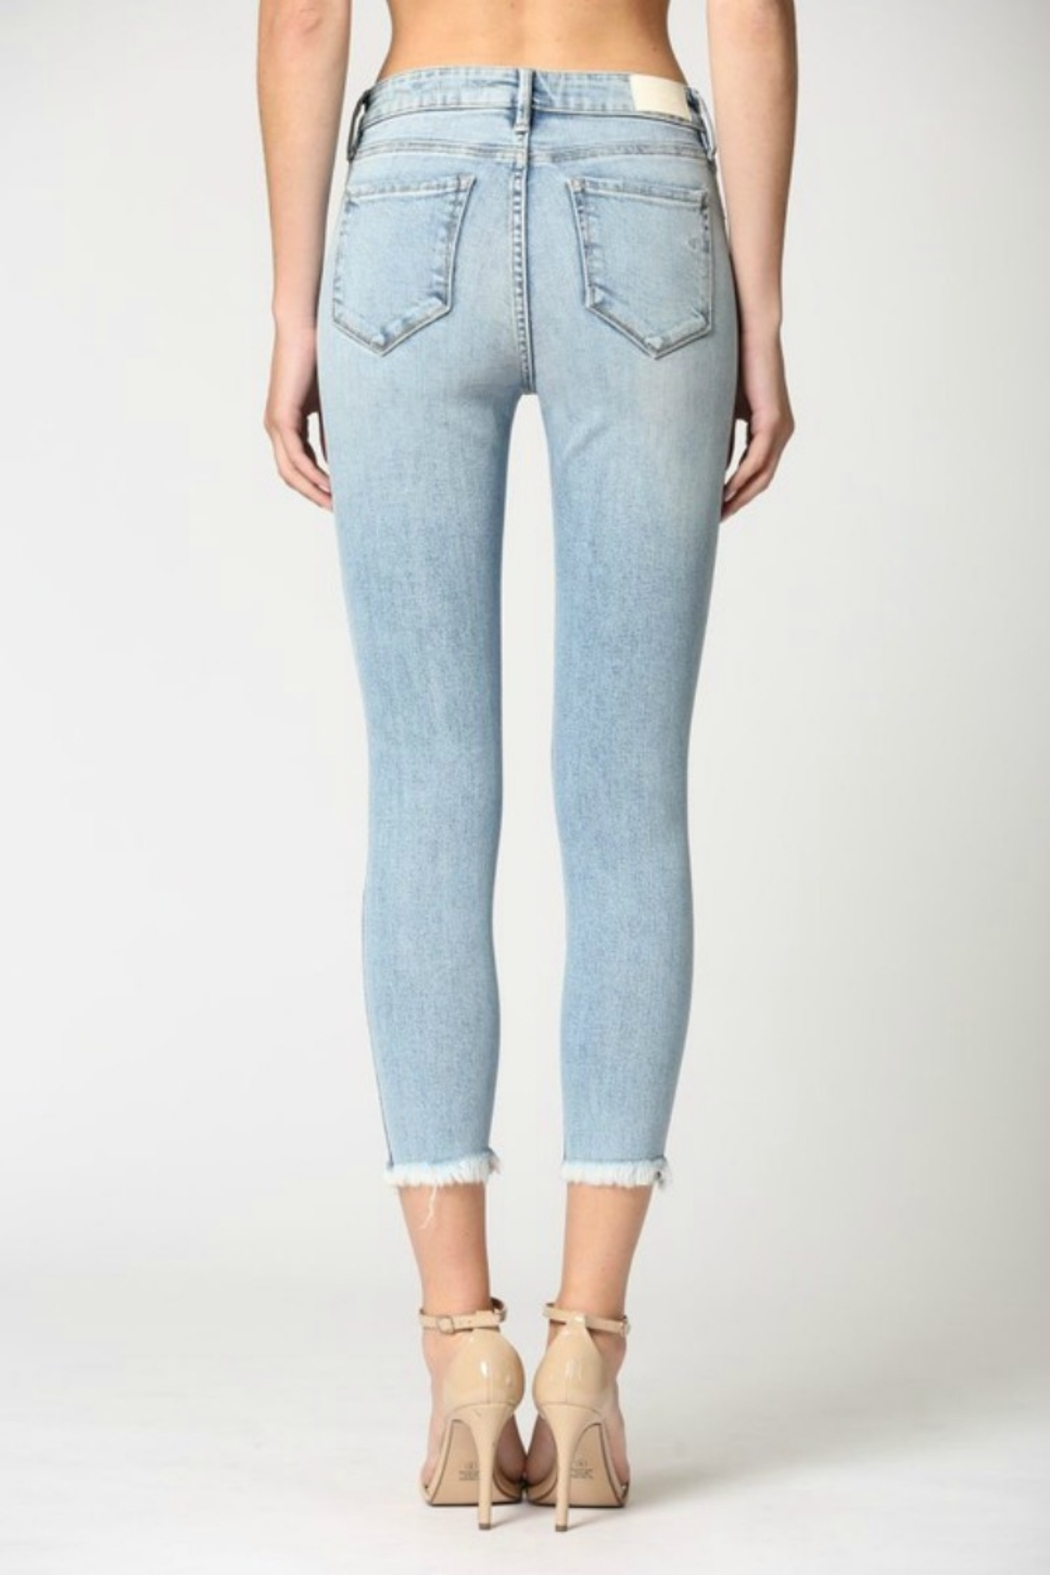 Hidden Jeans Logan Hi Rise Dad Jean w Wrapped Waistband - Back Cropped Image